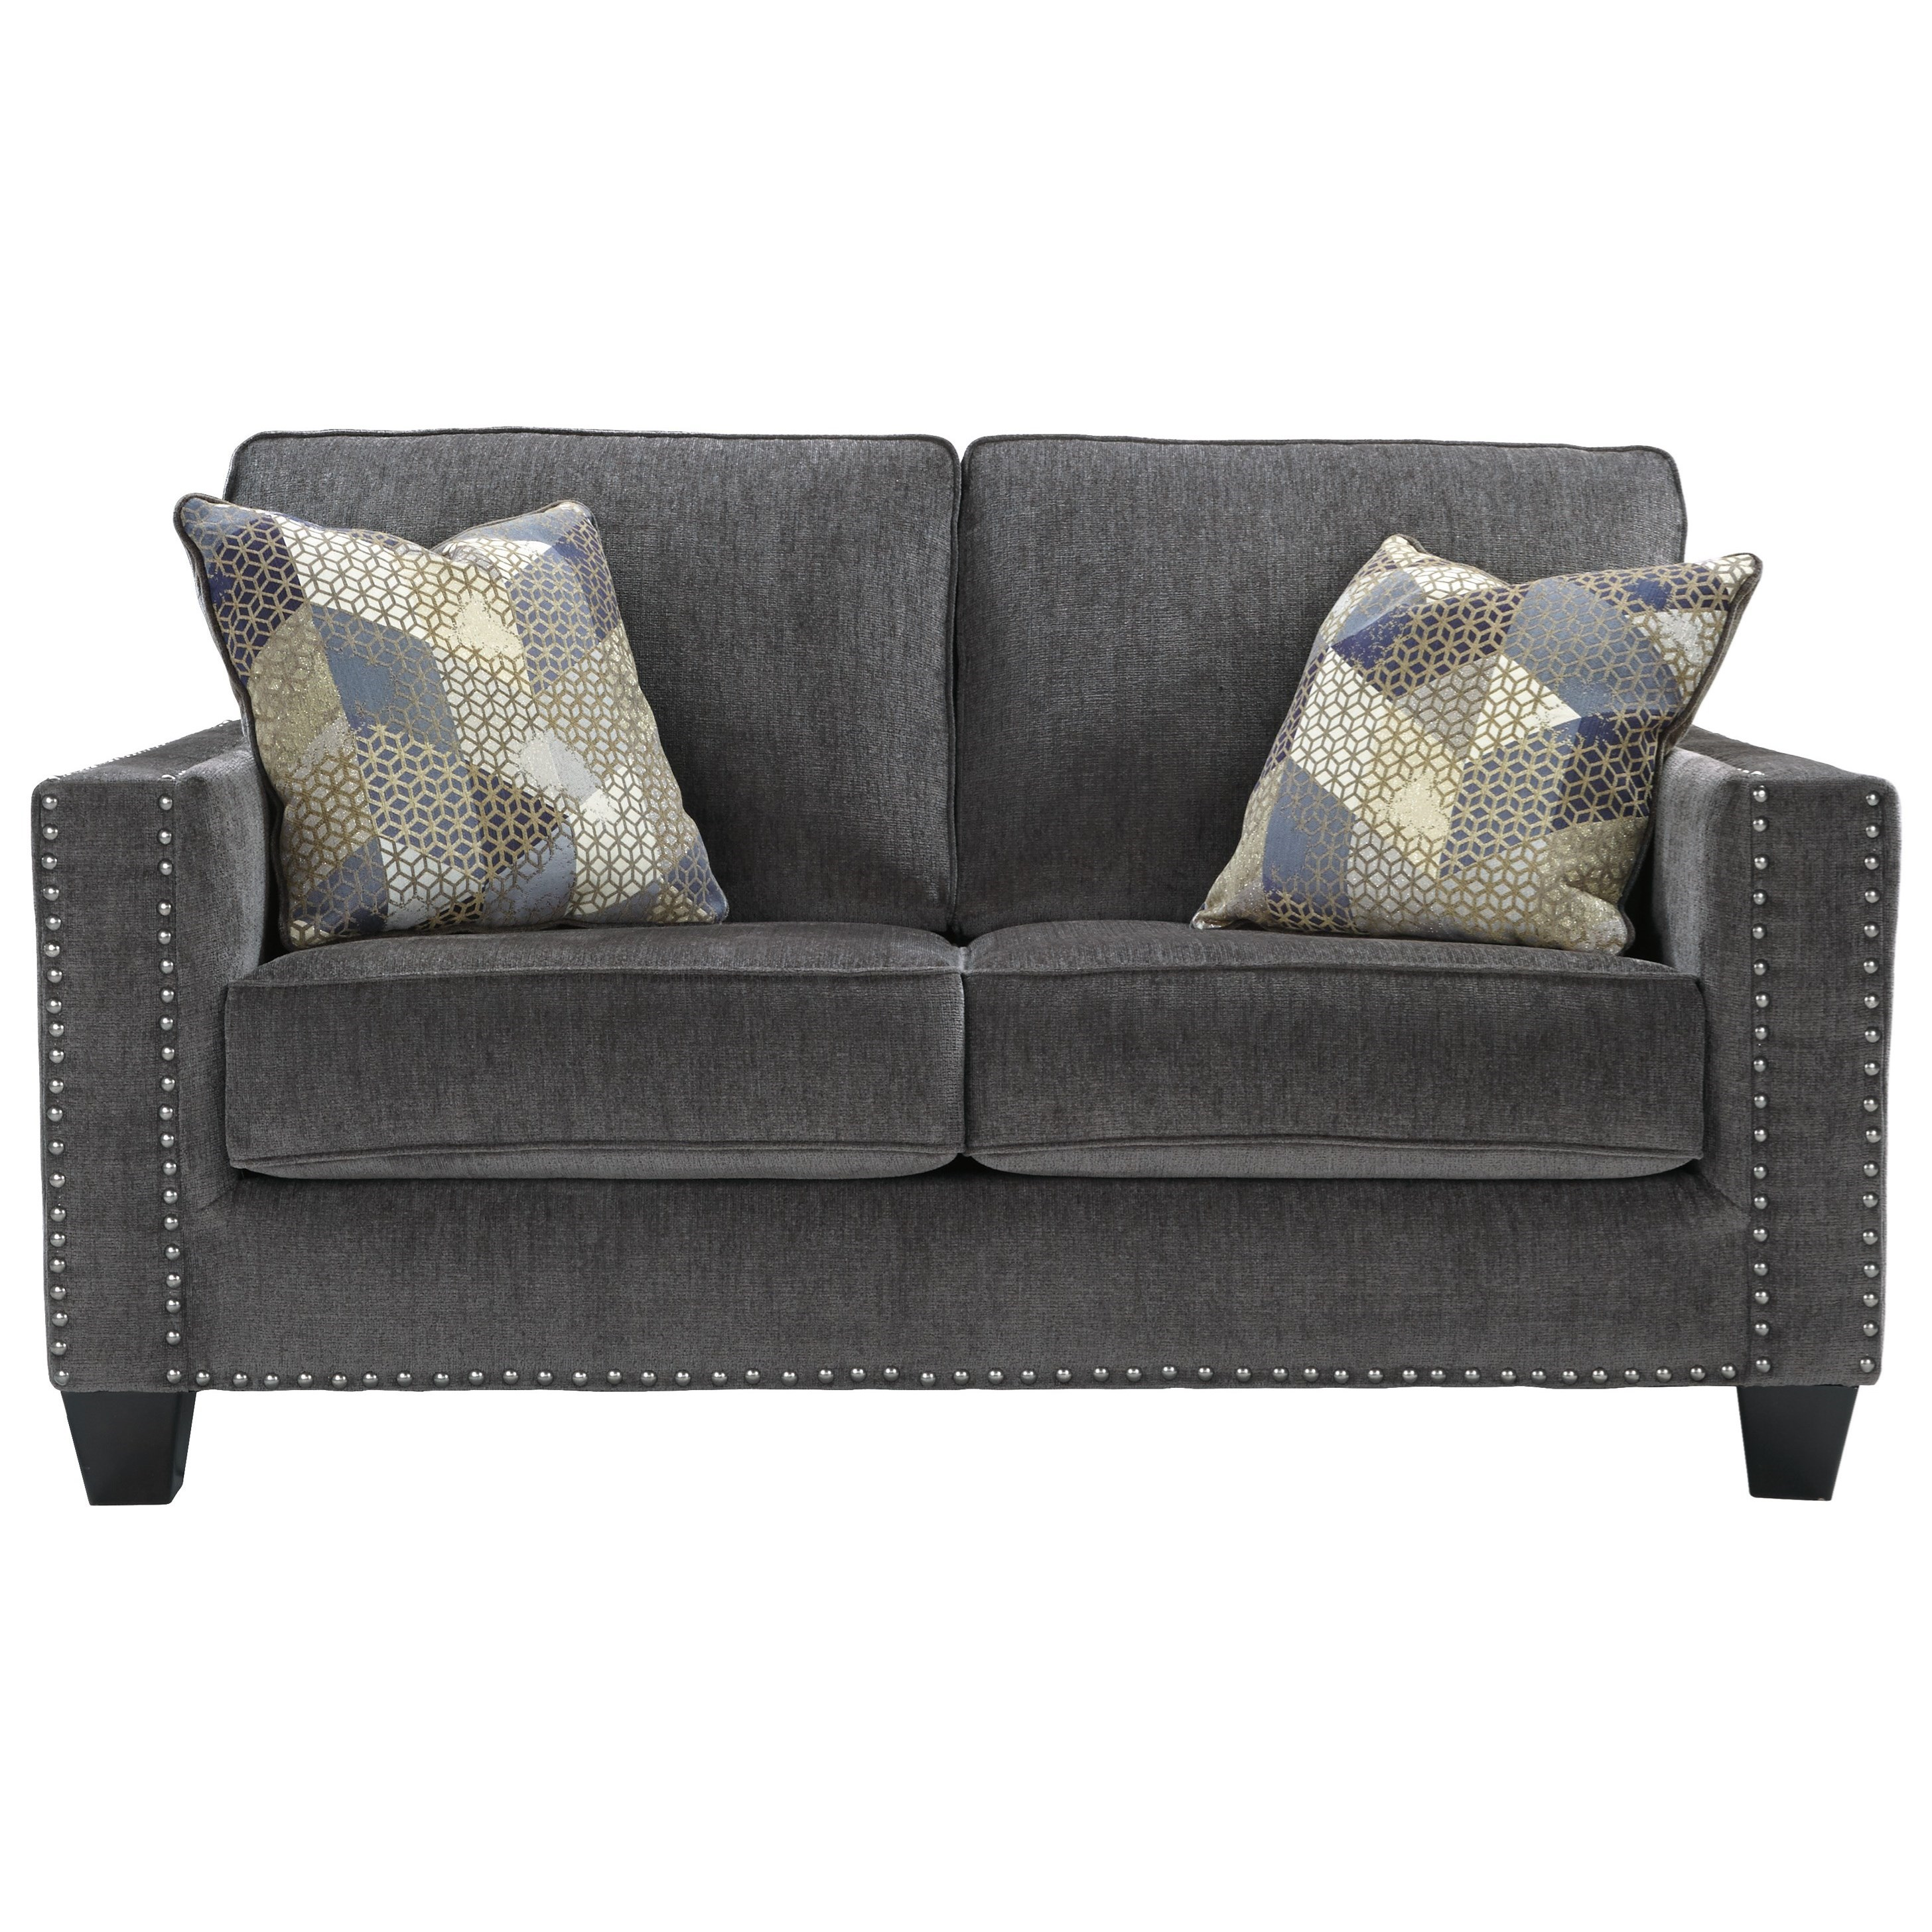 Gavril Loveseat by JB King at EFO Furniture Outlet